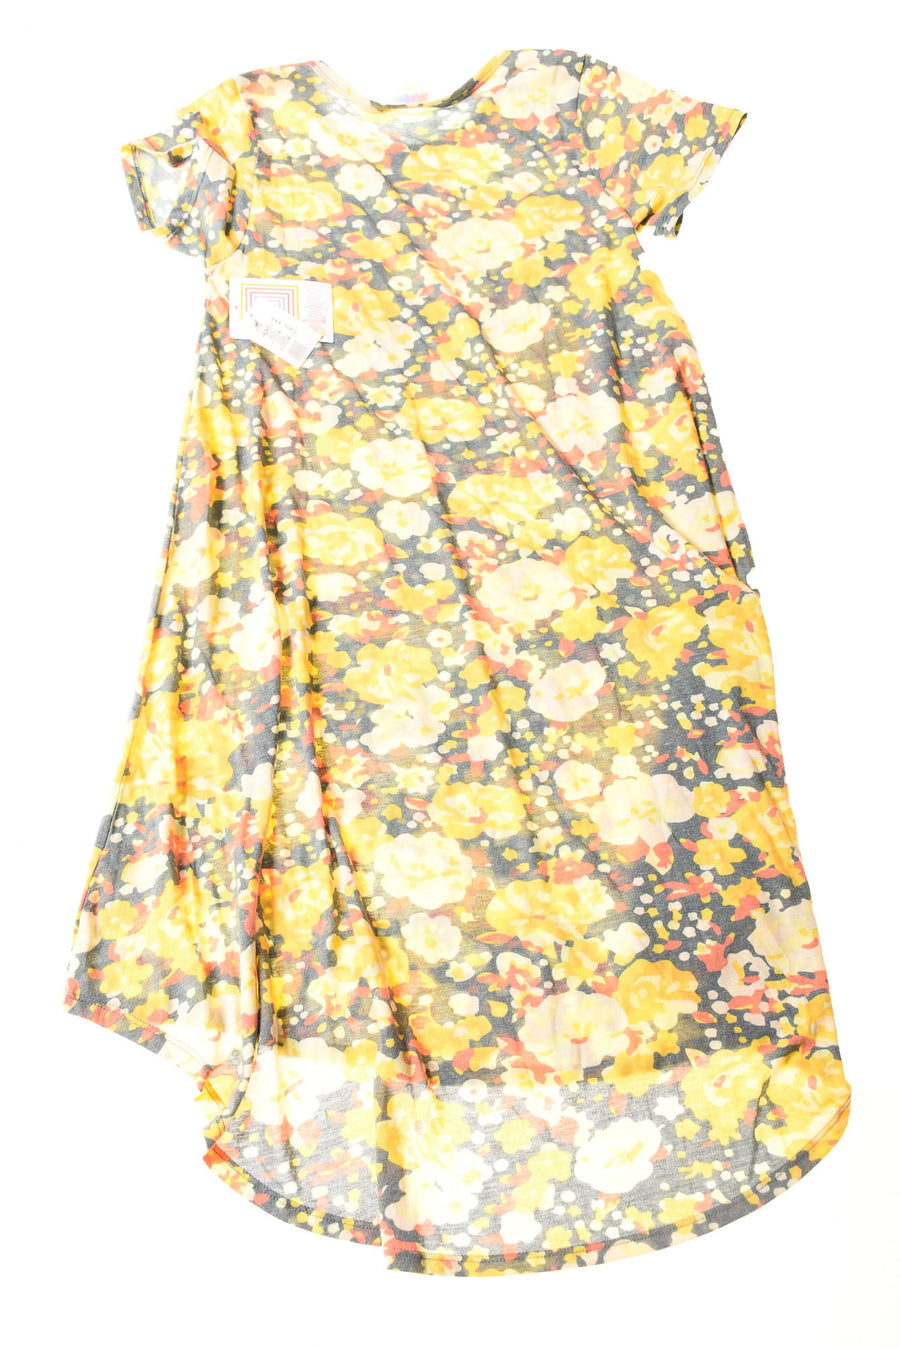 NEW Lula Roe Women's Dress XX-Small Multi-Color / Floral